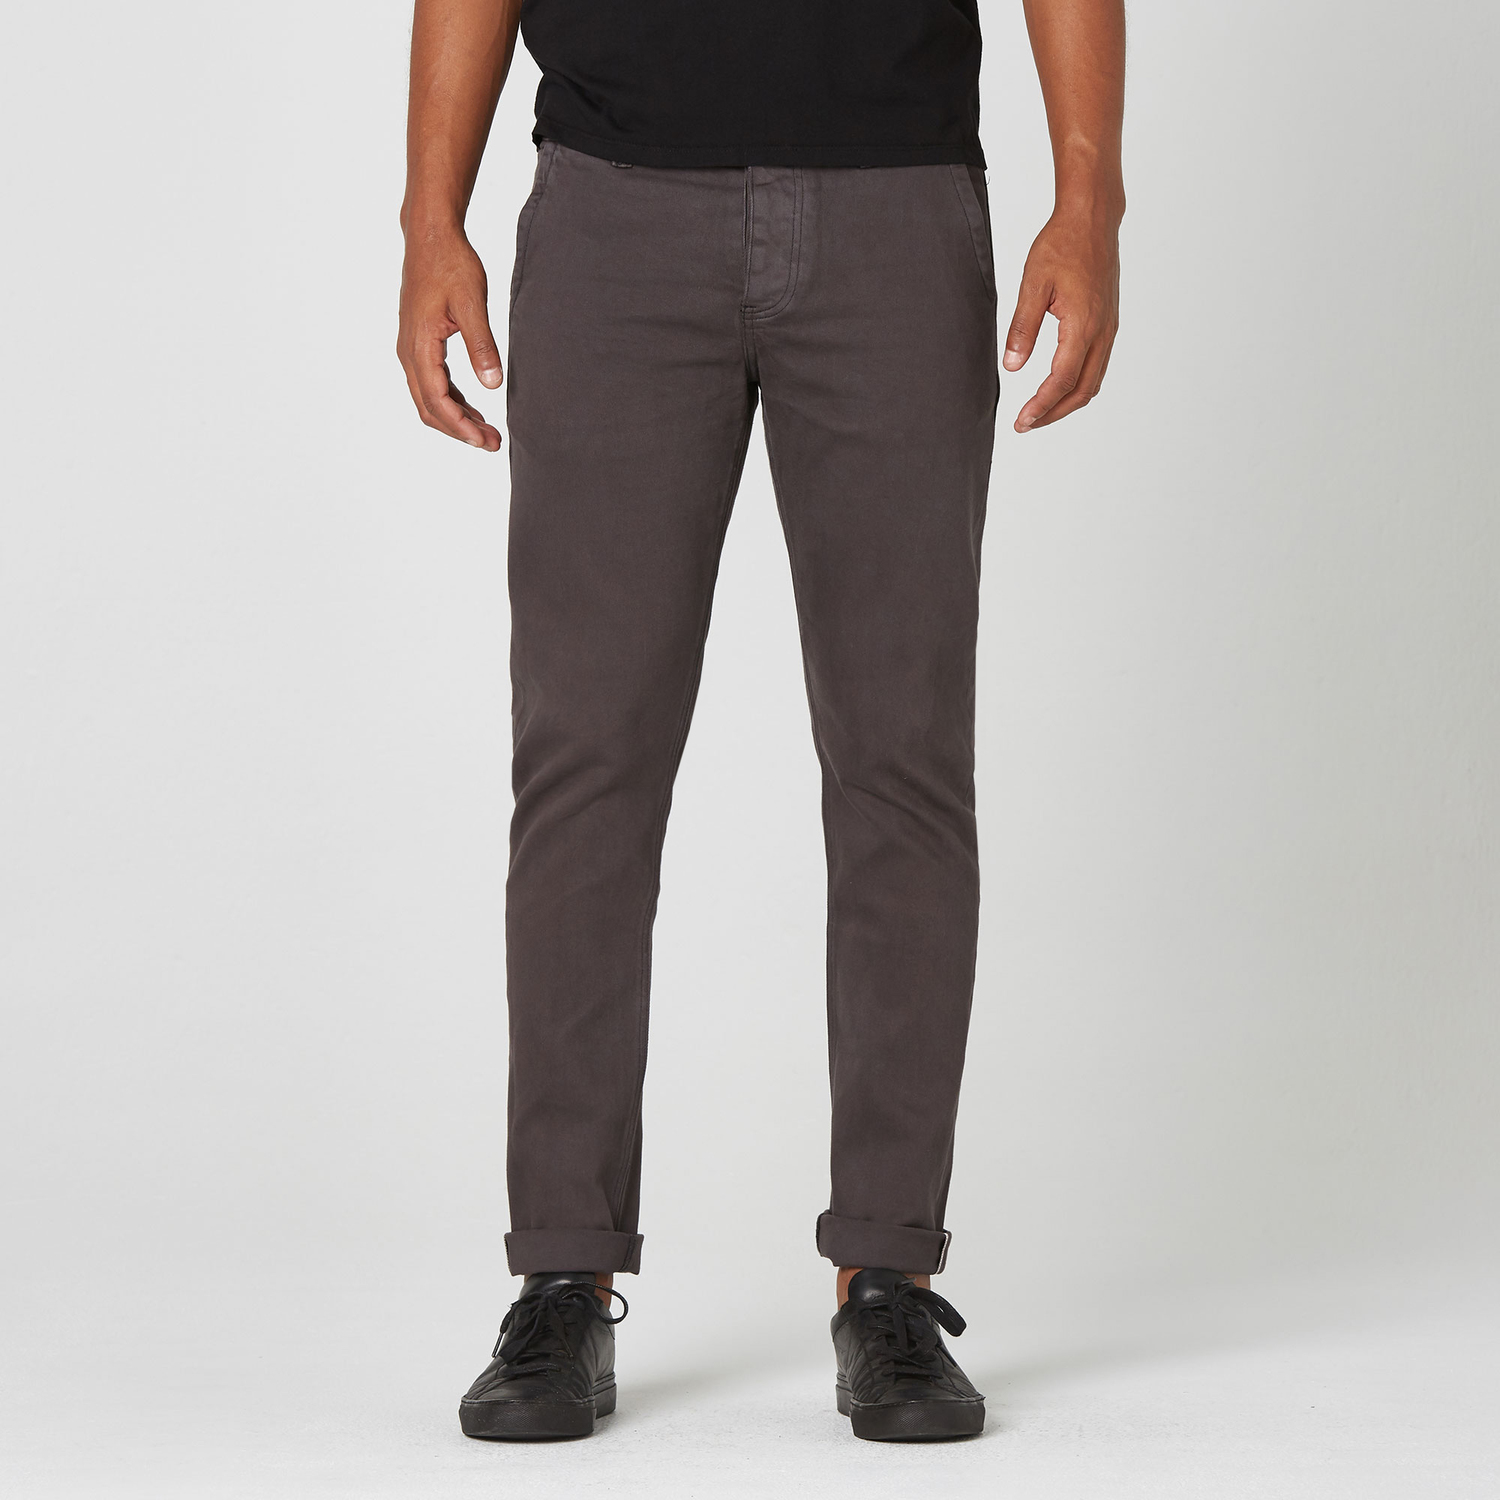 1f155af95a Mens Skinny Slim Selvedge Chino Pant In Charcoal $75 | DSTLD